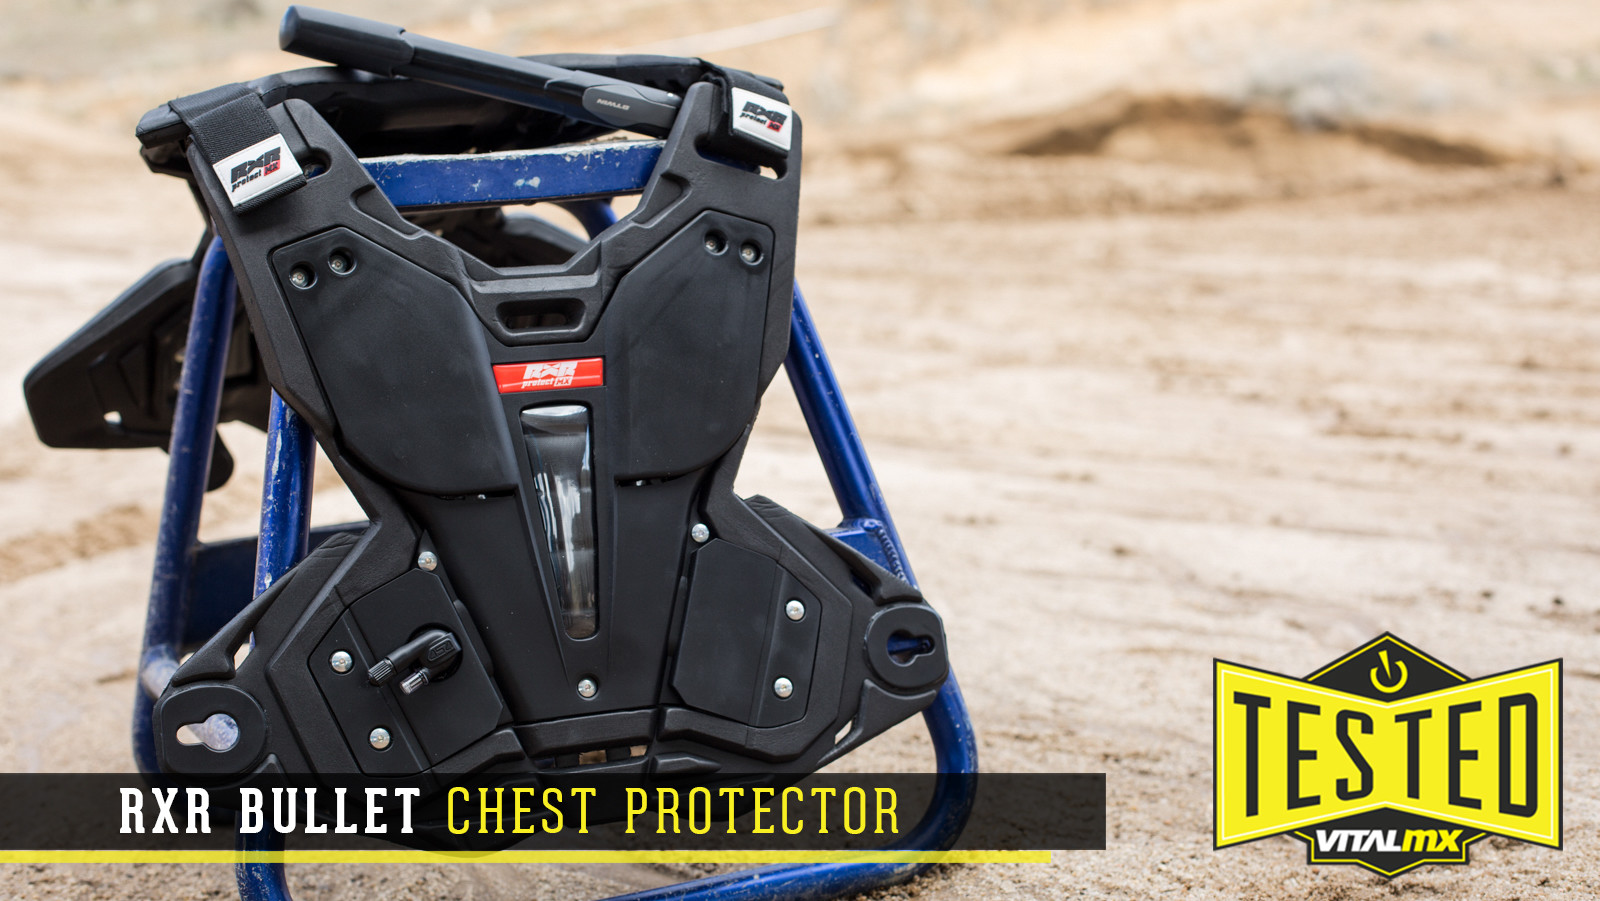 Tested: RXR Bullet Chest Protector